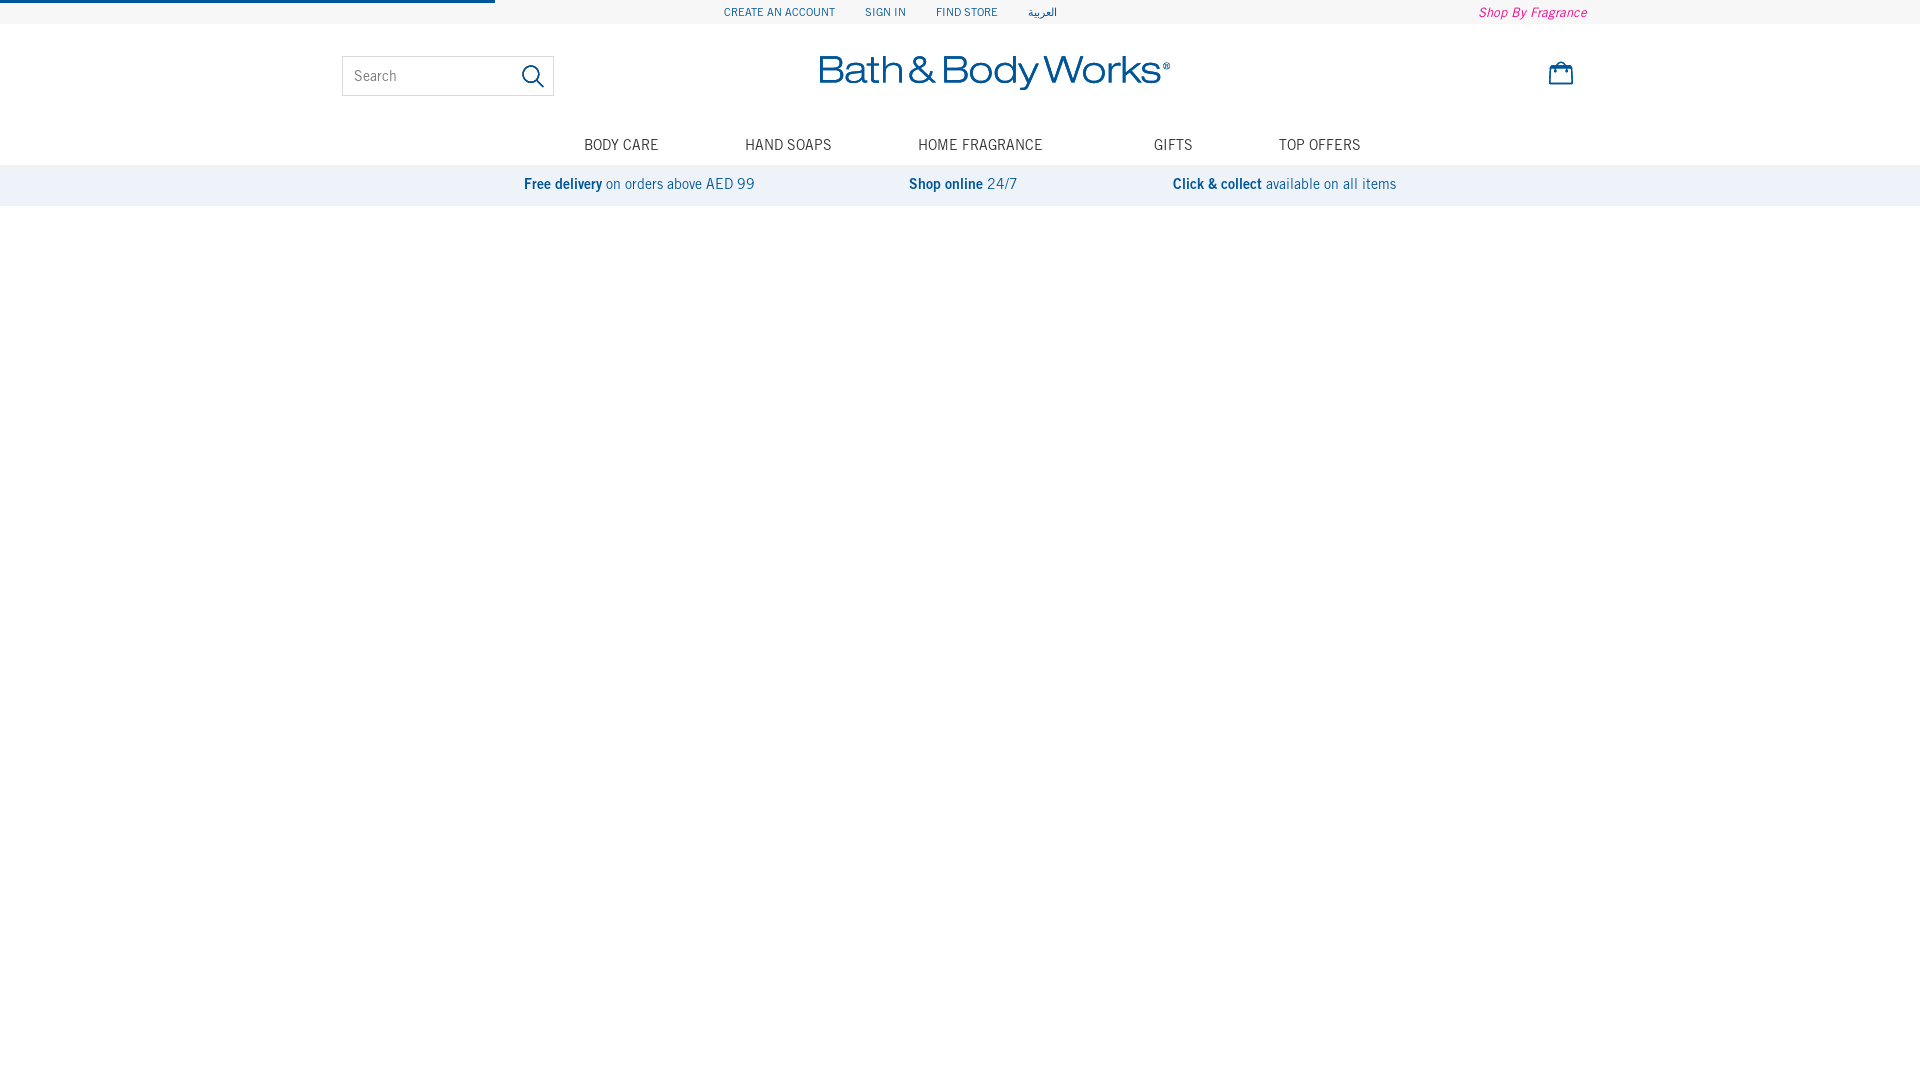 Bath & Body Works AE SA KW website